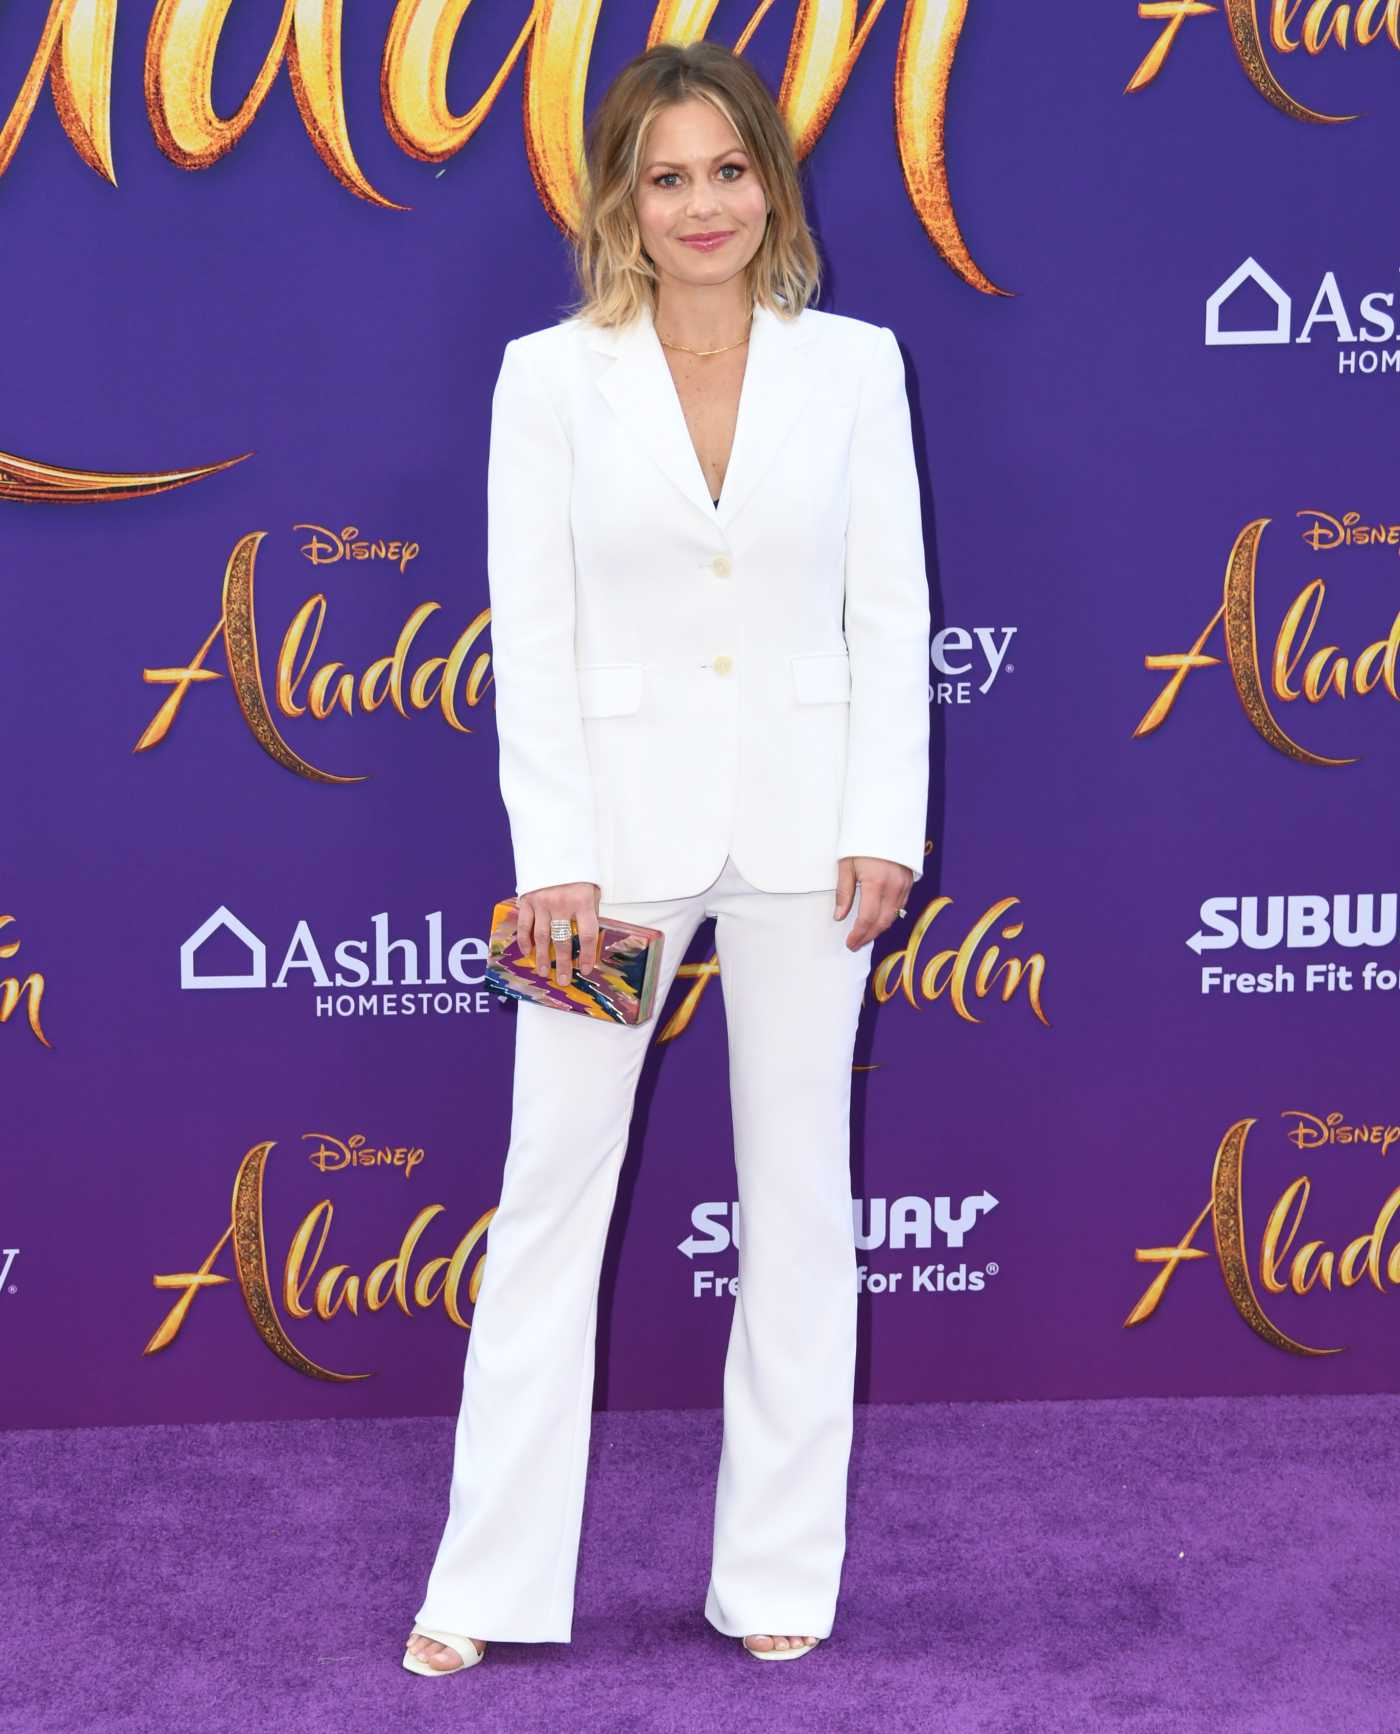 Candace Cameron Bure Attends Disney's Aladdin Premiere in Hollywood 05/21/2019